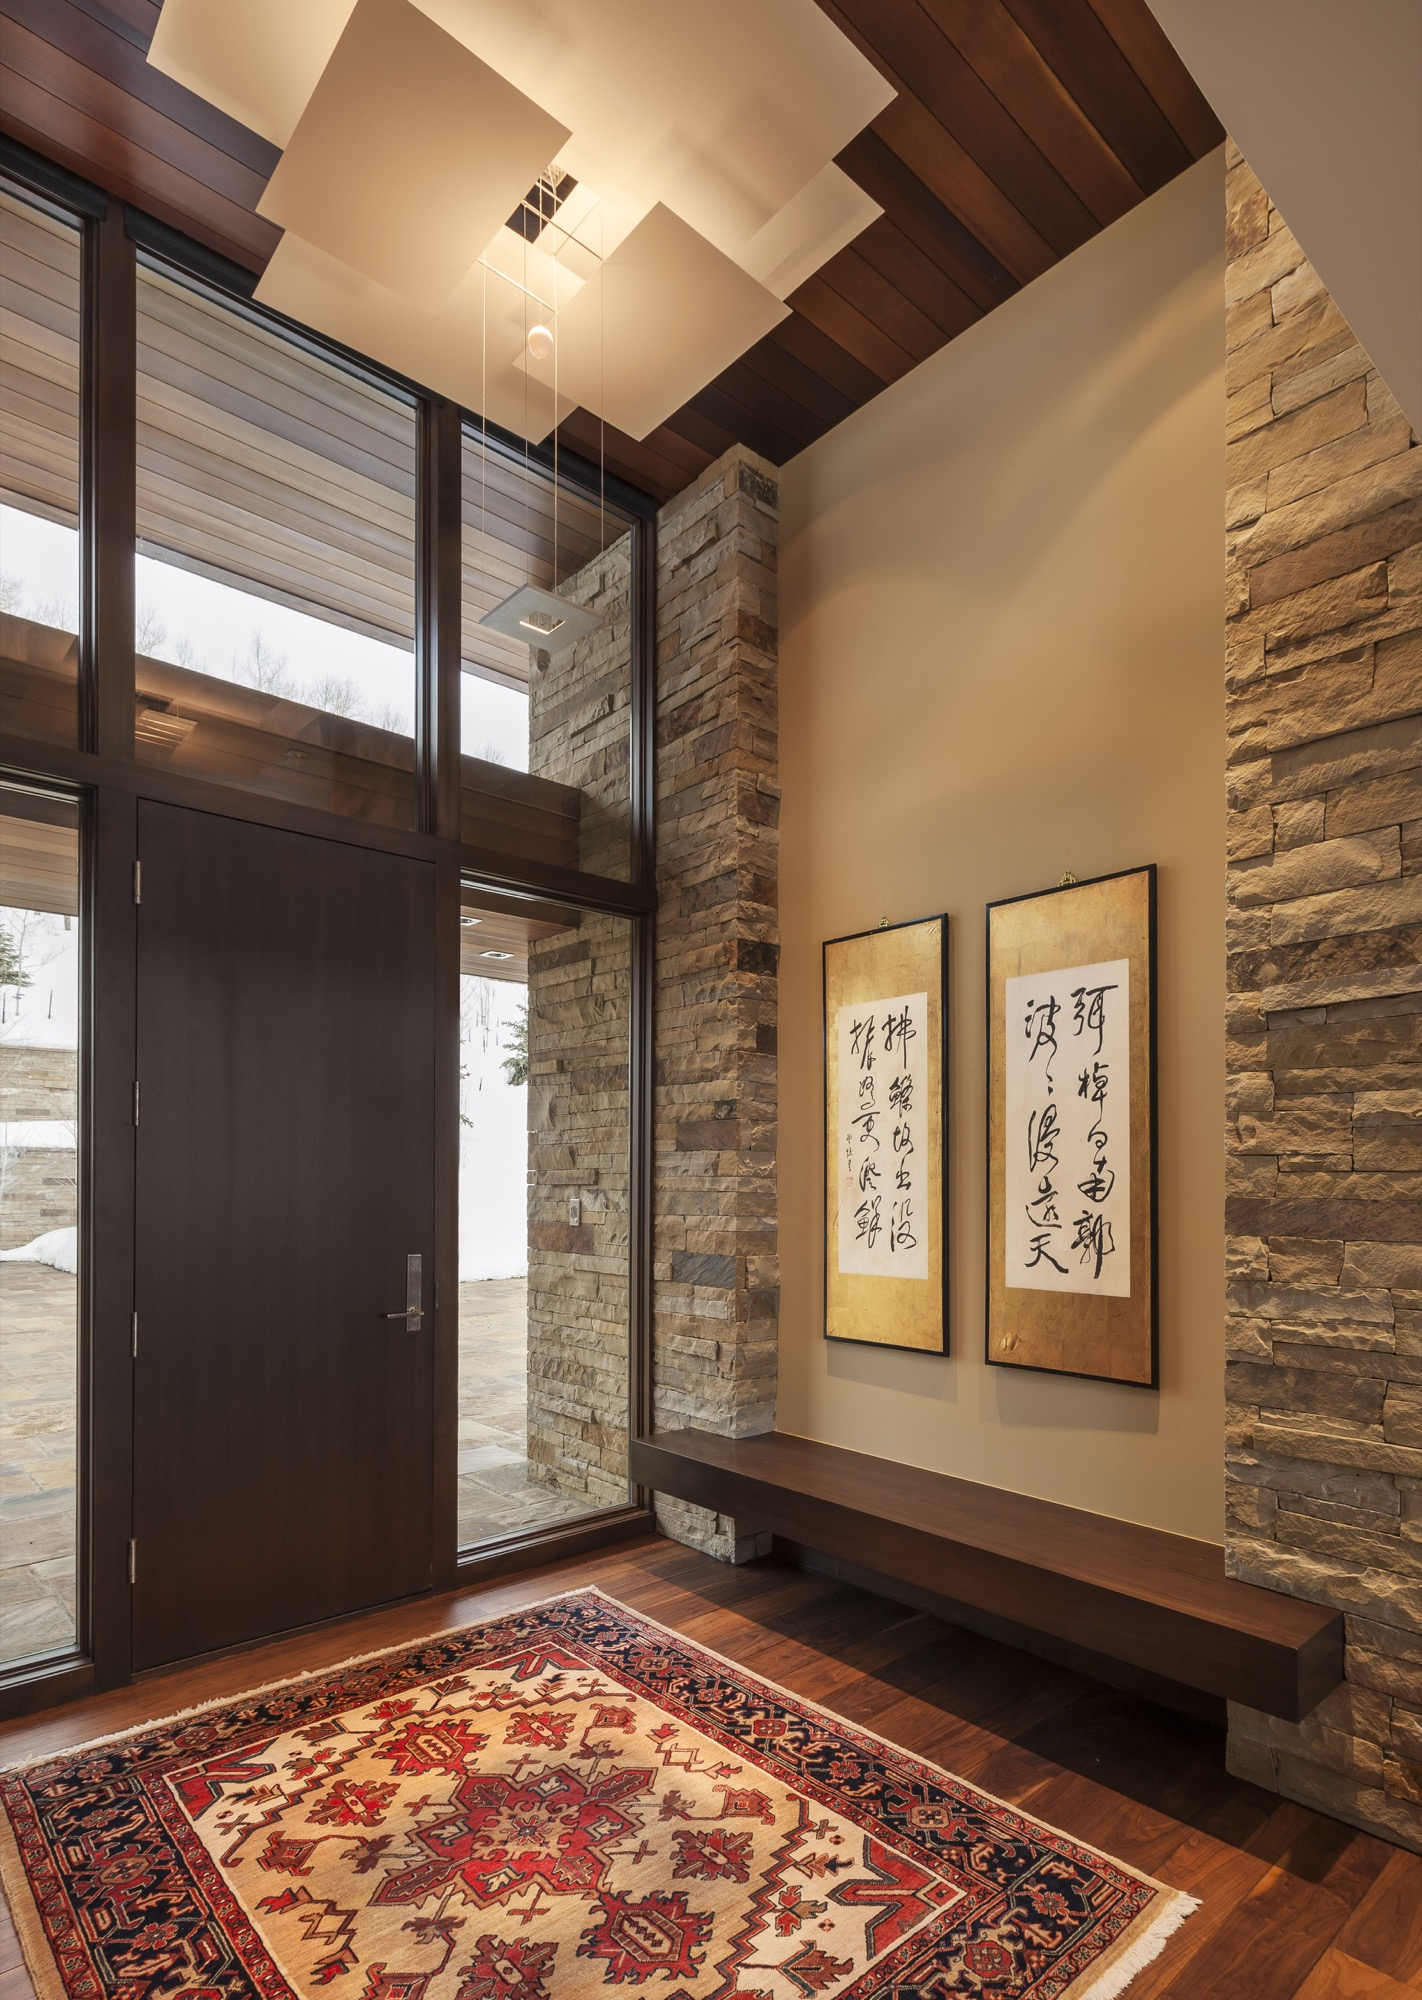 Indoor-outdoor flow: Every stone on the inside matches the color of its counterpart on the opposite side of the glass / Photo by Paul Crosby